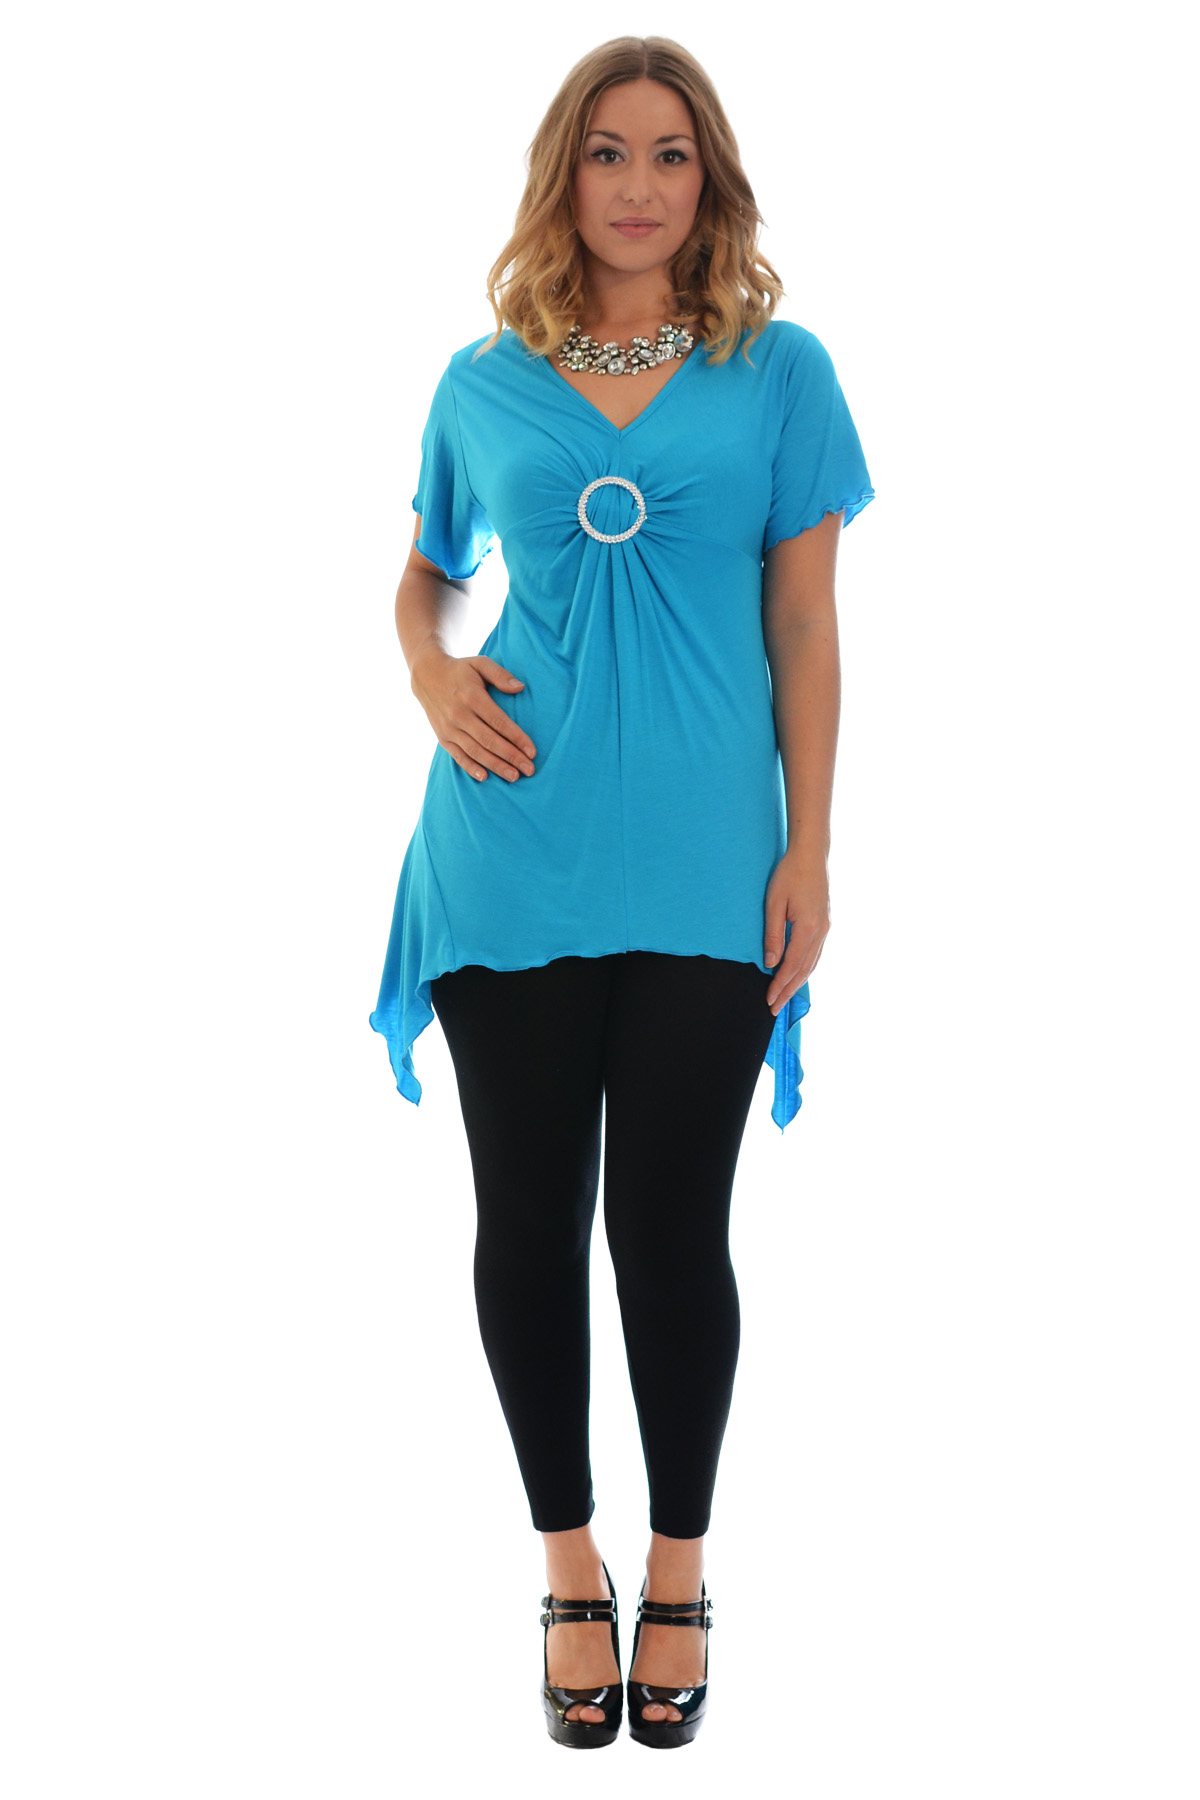 New-Womens-Plus-Size-Top-Ladies-T-Shirt-Buckle-Stud-A-Line-Asymmetric-Nouvelle thumbnail 36